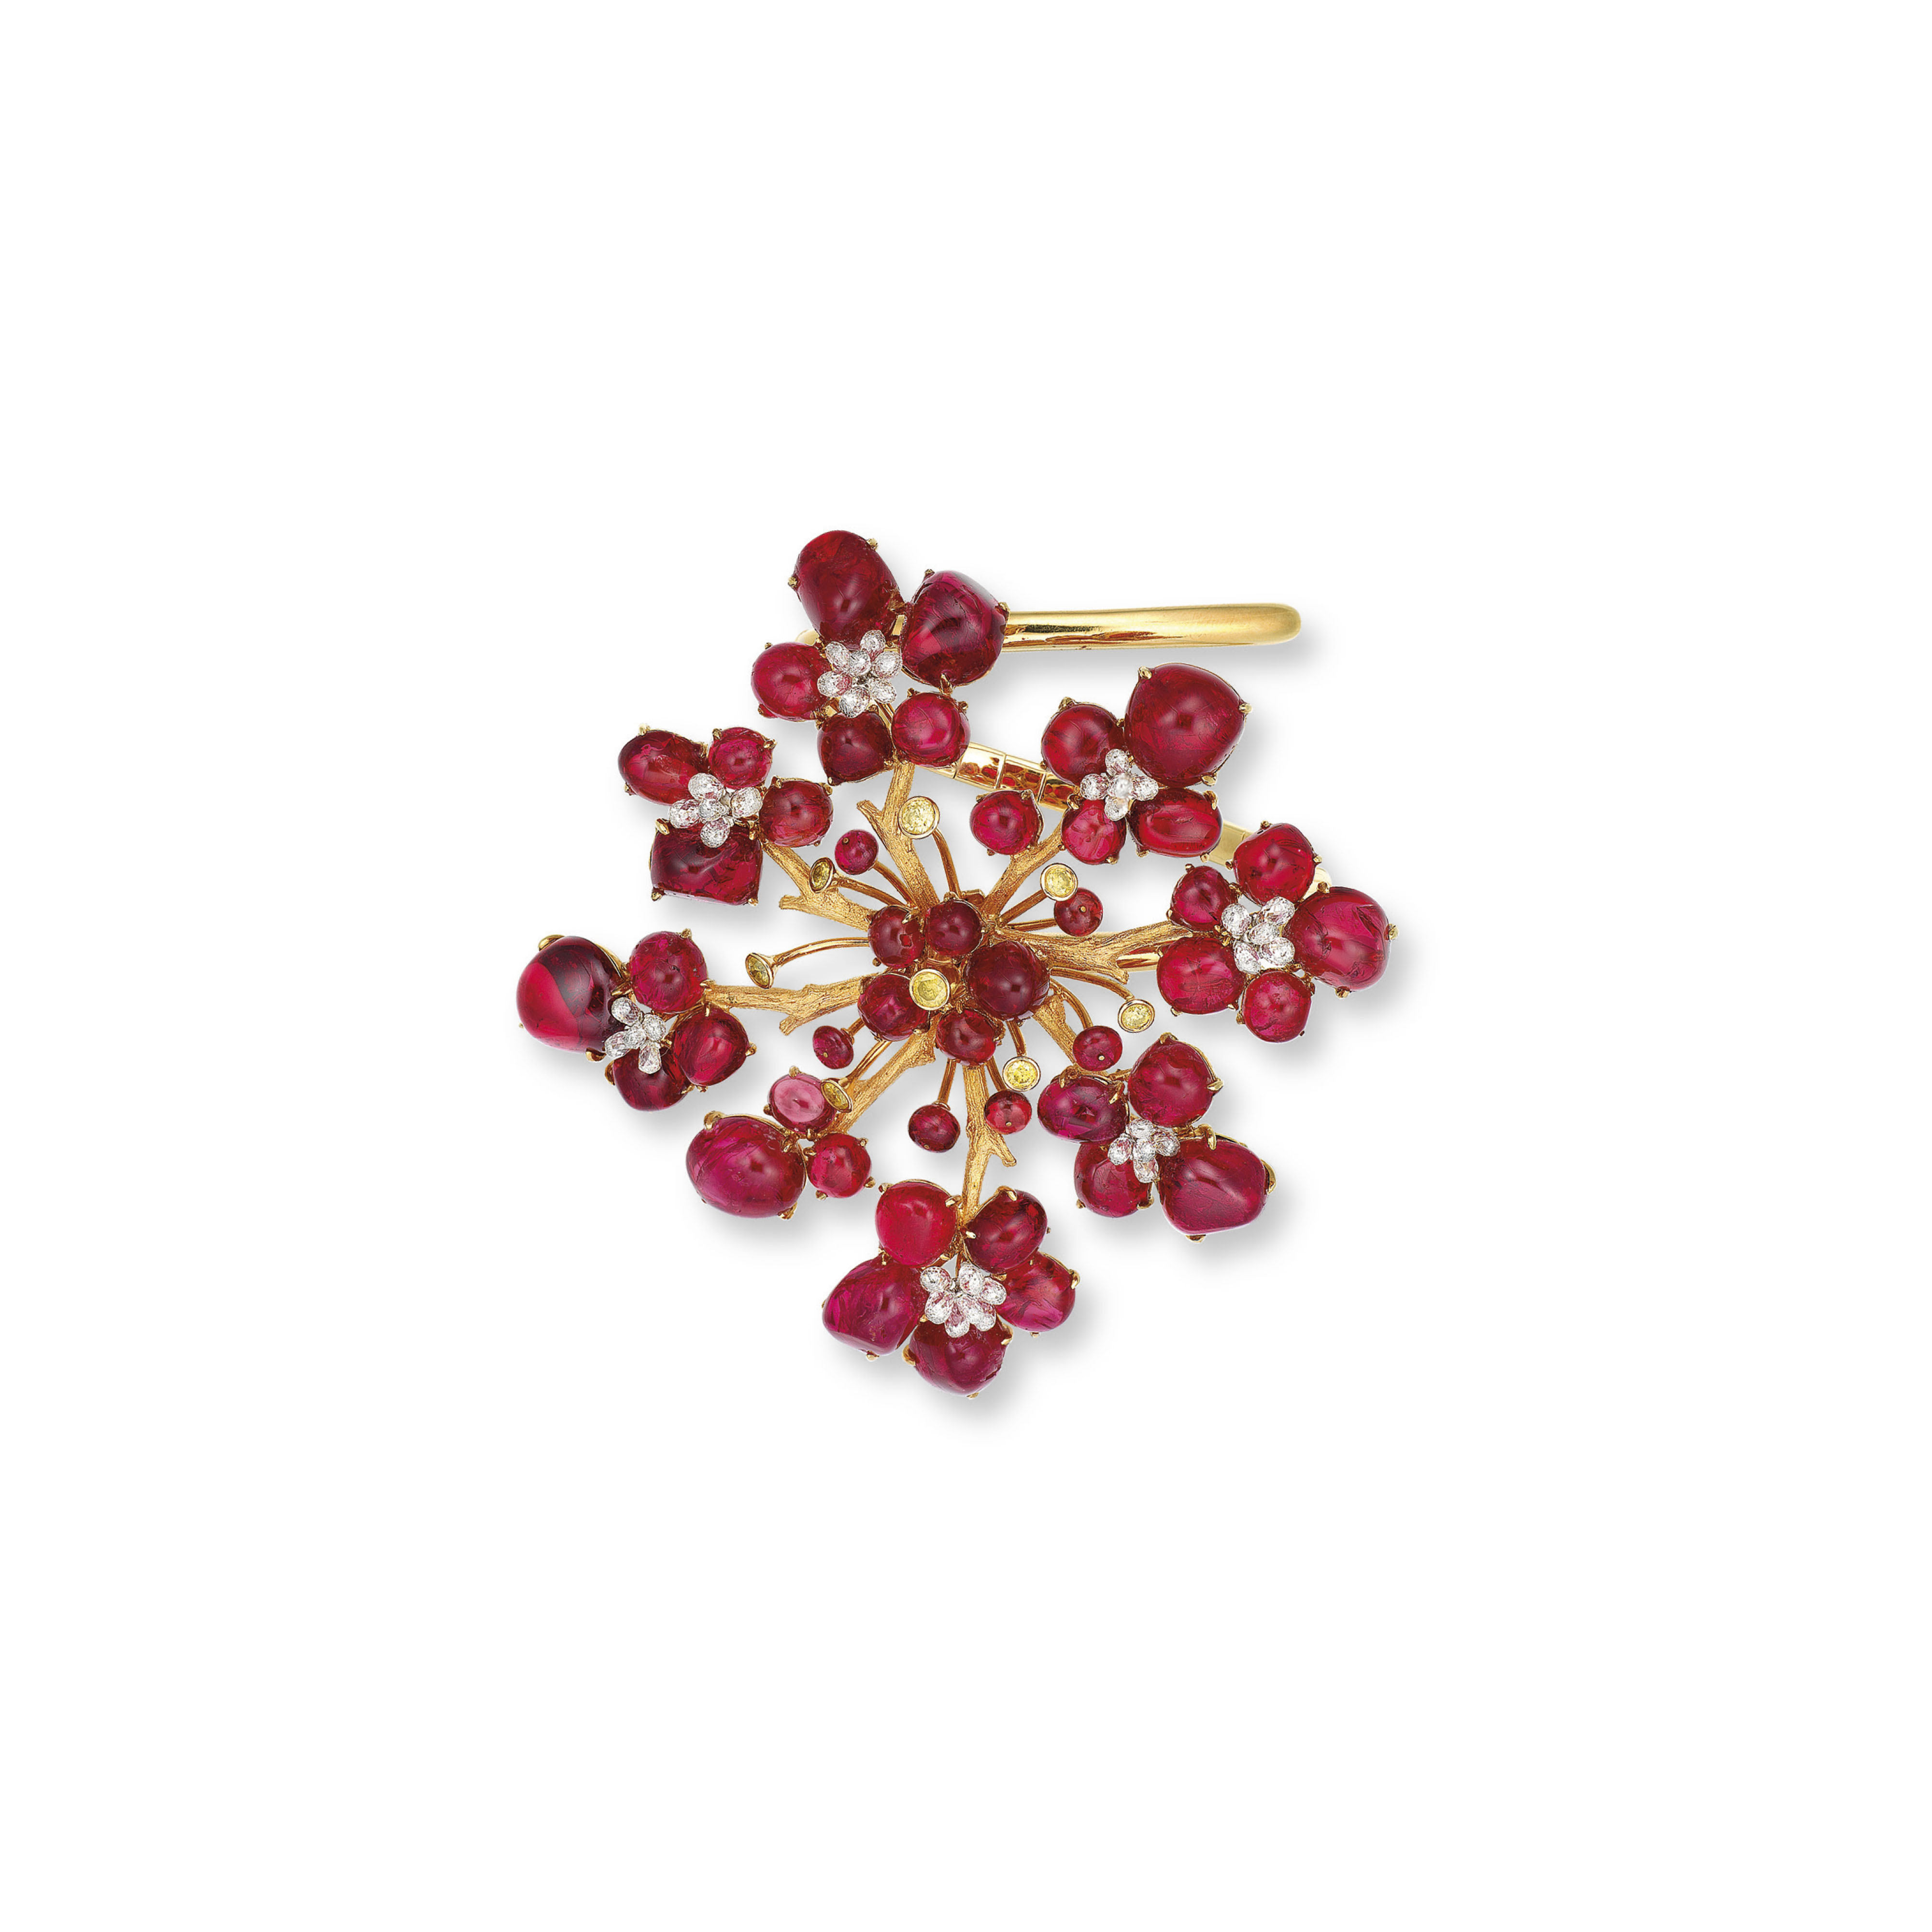 A SPINEL, DIAMOND AND COLOURED